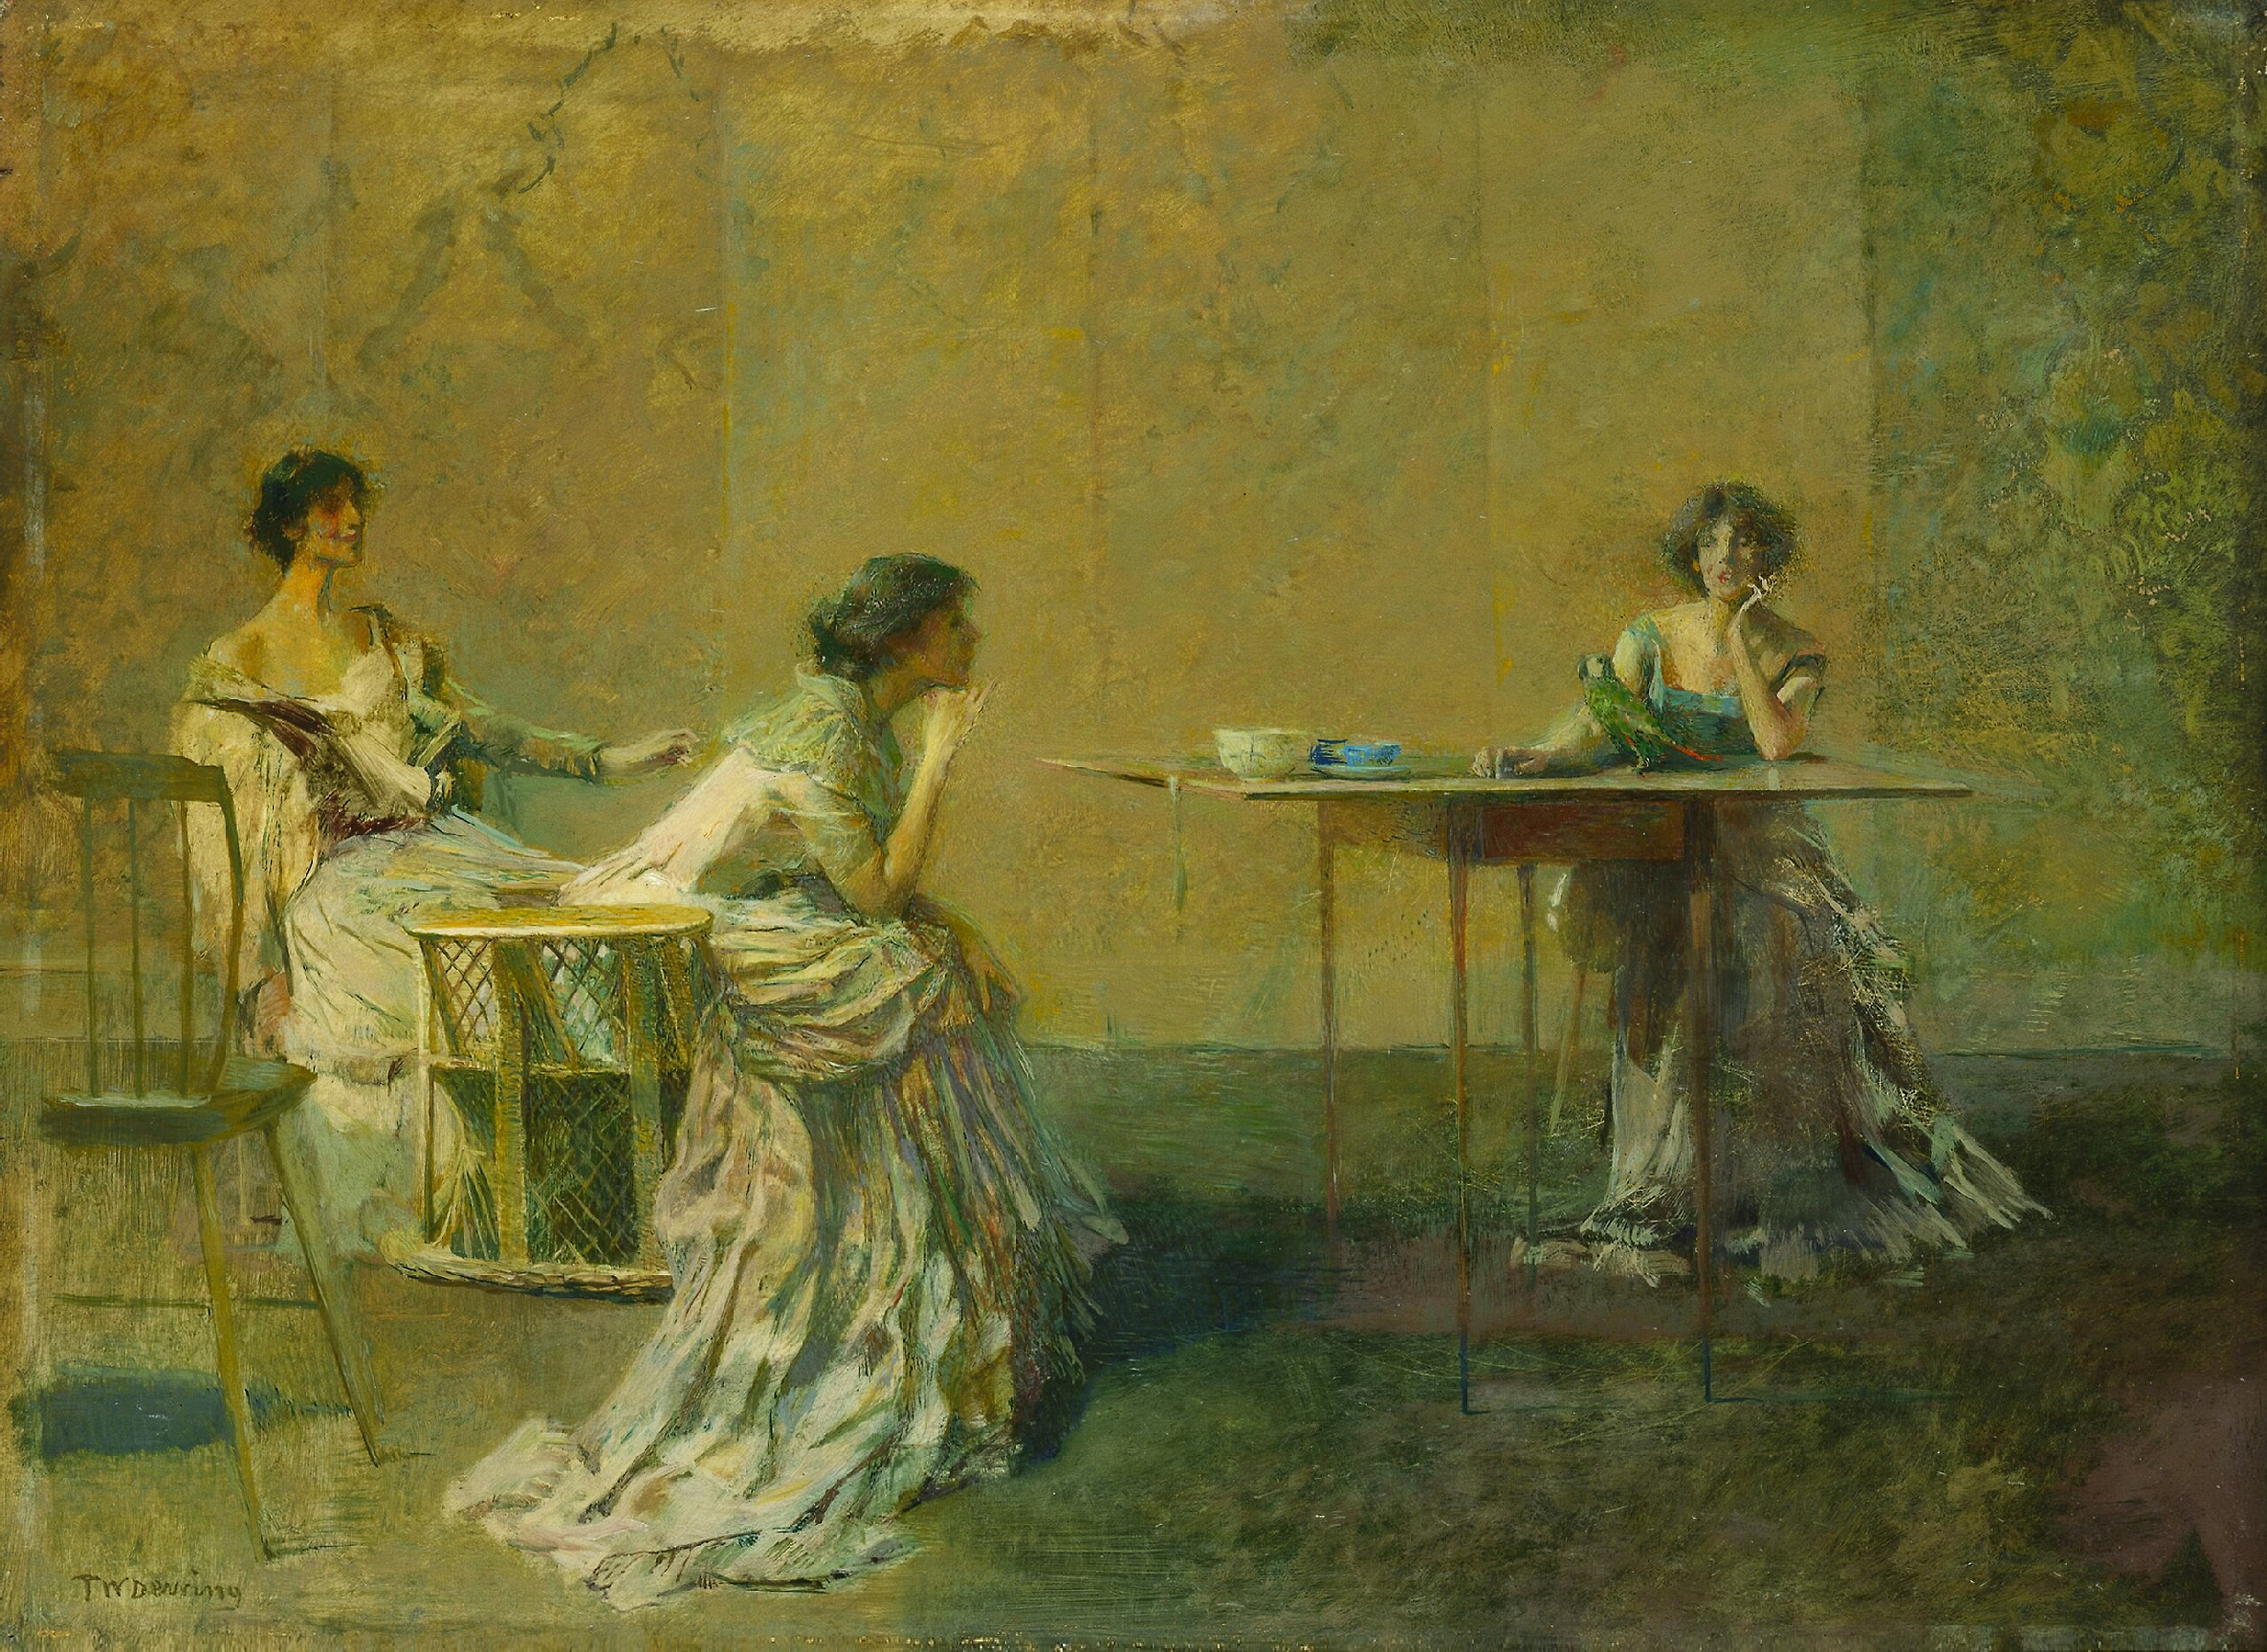 Thomas Dewing: The Gossip